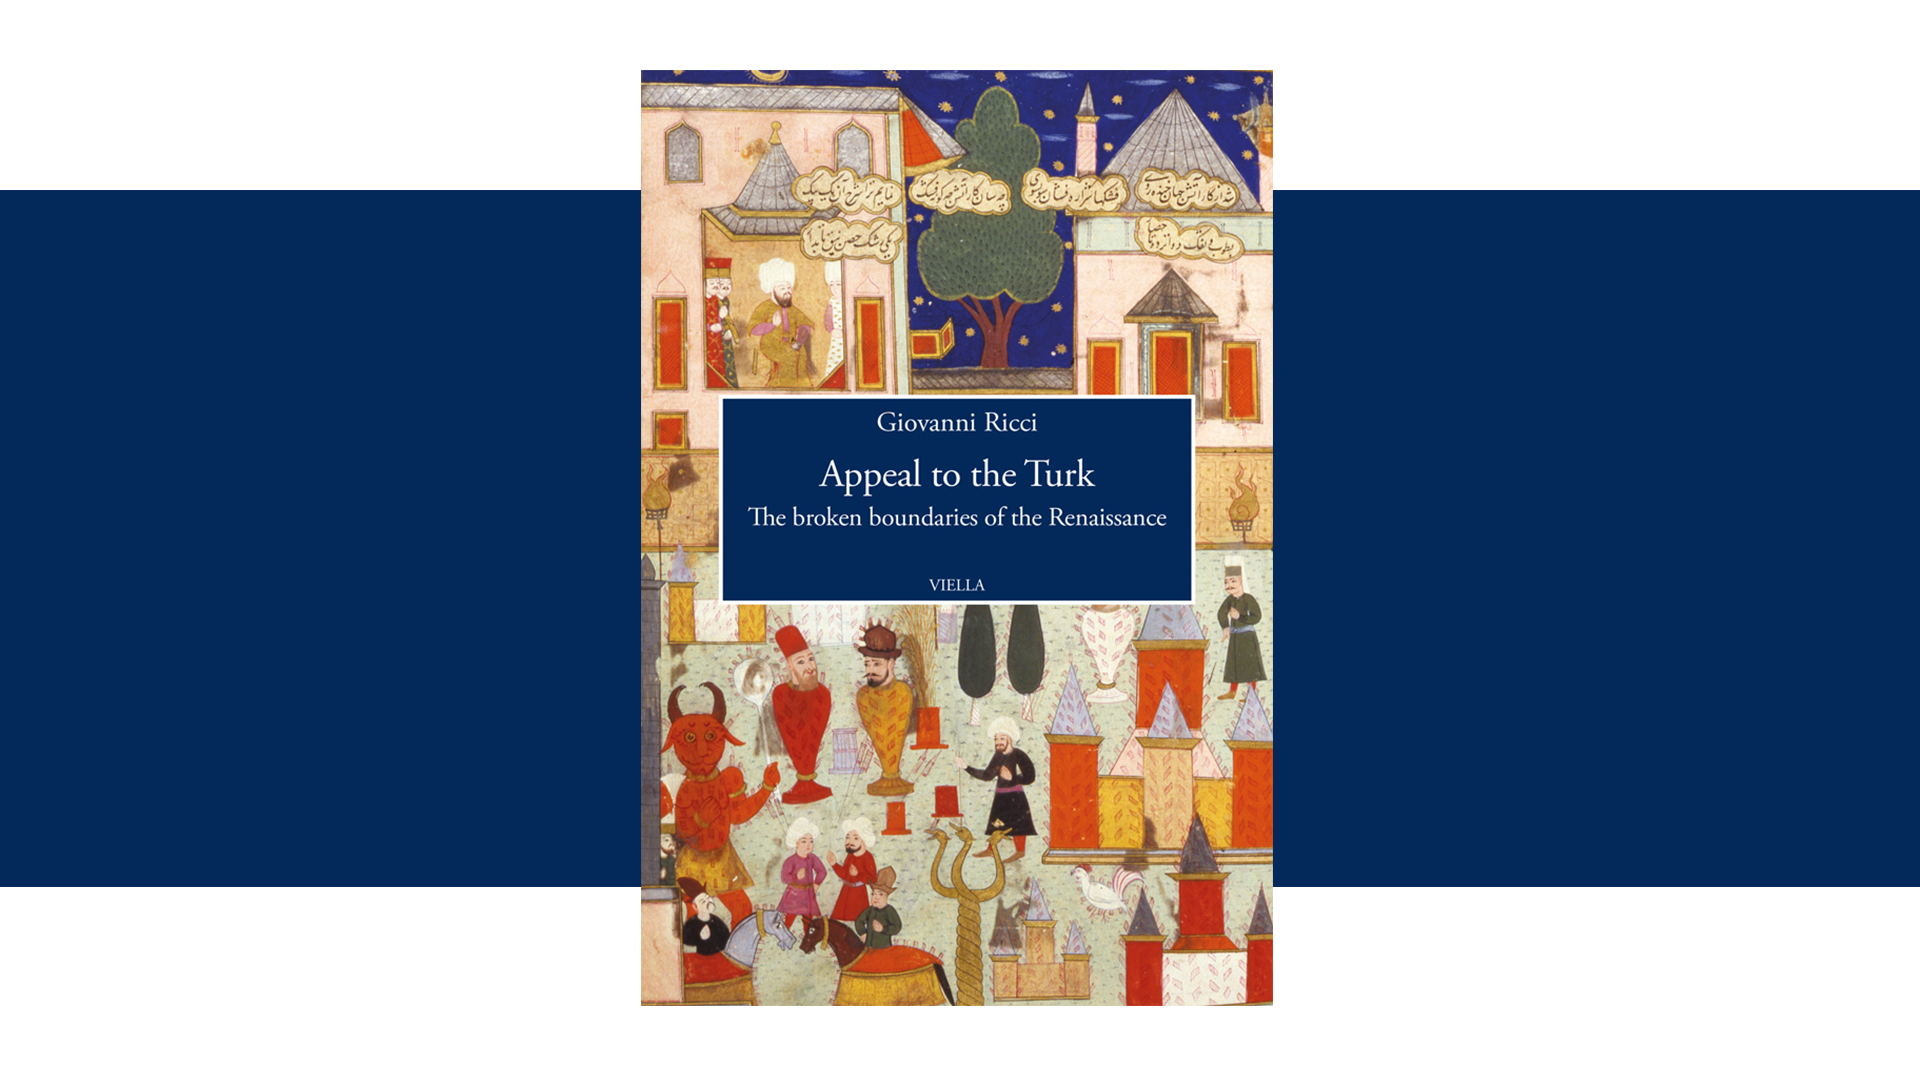 "Esorcizzare la paura, infrangere i confini. La recensione del volume di Giovanni Ricci ""Appeal to the Turk. The broken boundaries of the Renaissance"""